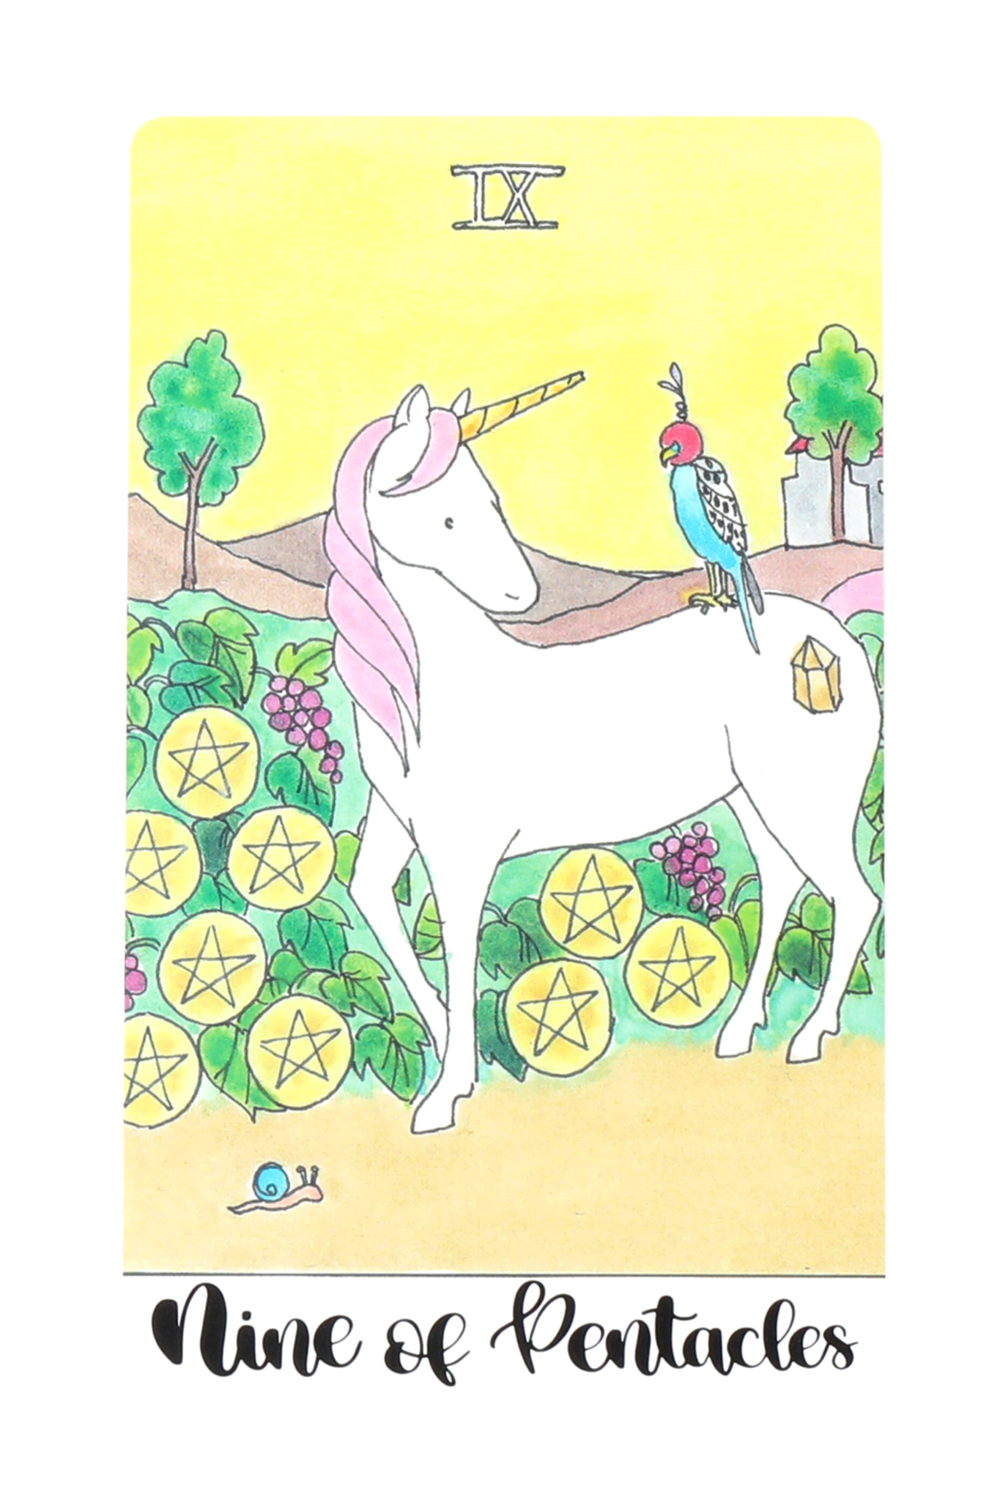 HUMAN DESIGN X TAROT - Gate 42 is represented by the Nine of Pentacles. When you follow your Strategy and Authority to enter into something that's correct for you, you will be able to enjoy the fruits of your labor once you're finished!Deck: Crystal Unicorn Tarot